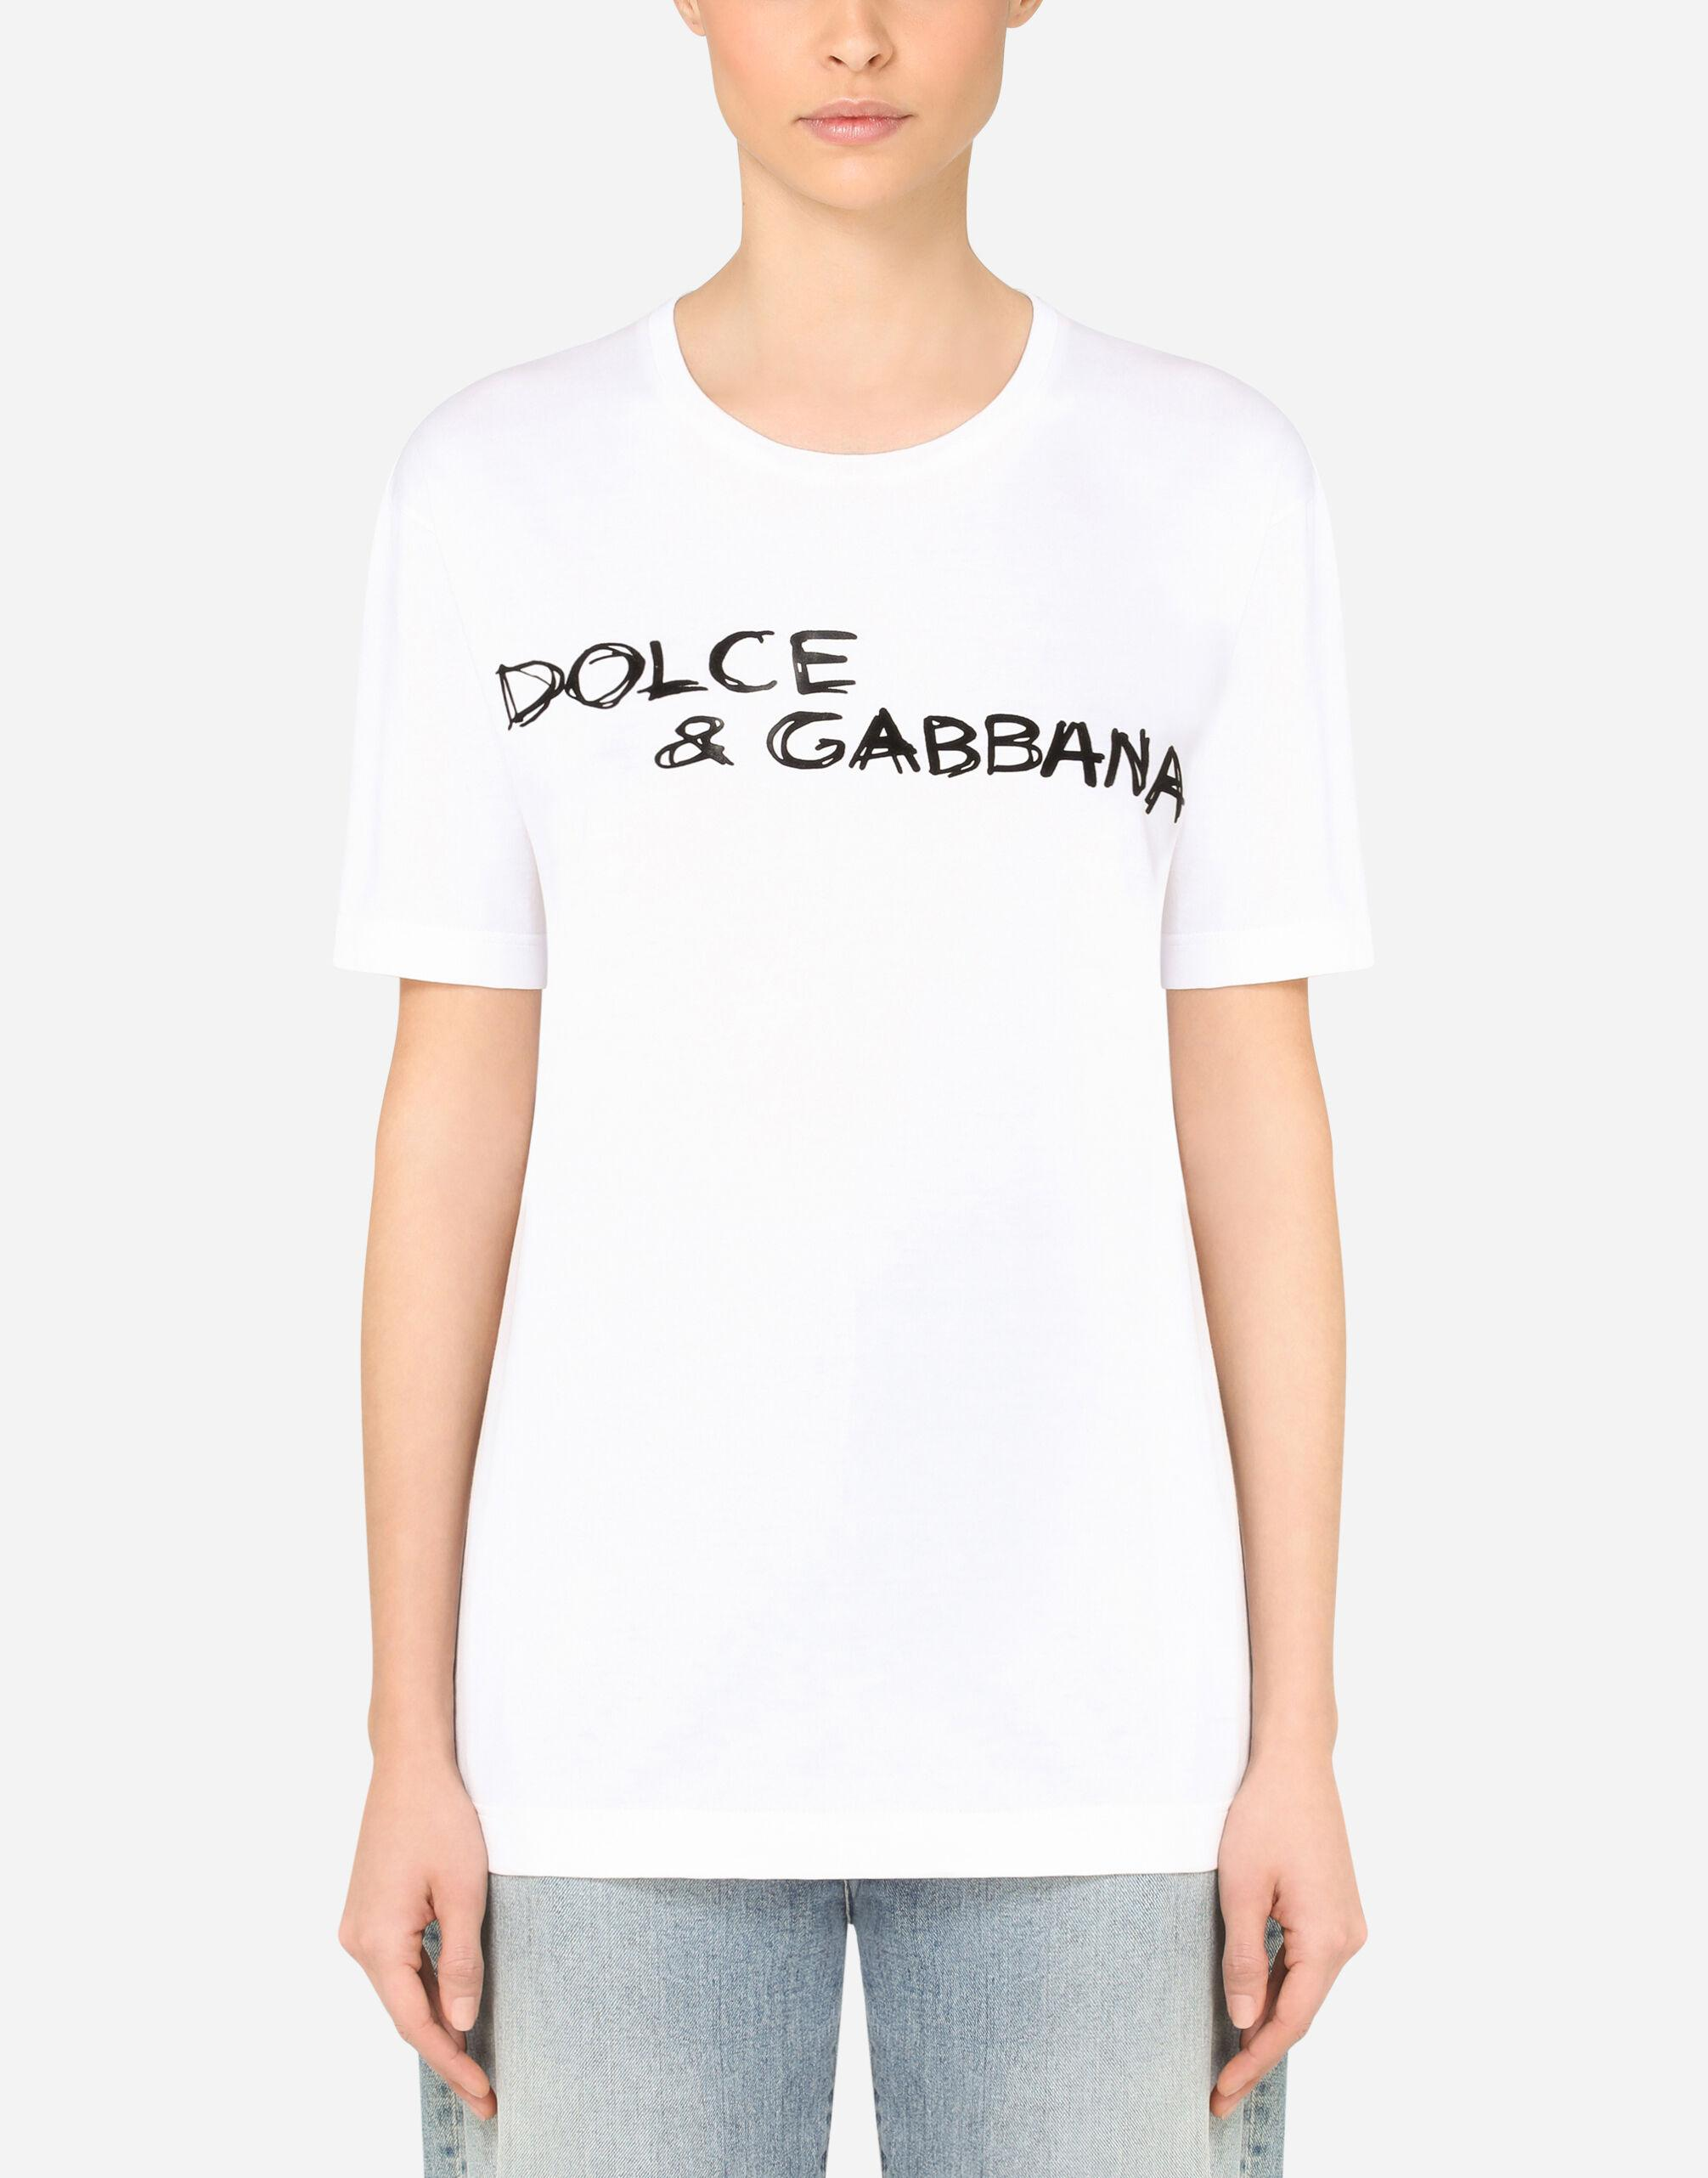 Oversize short-sleeved jersey T-shirt with Dolce & Gabbana lettering